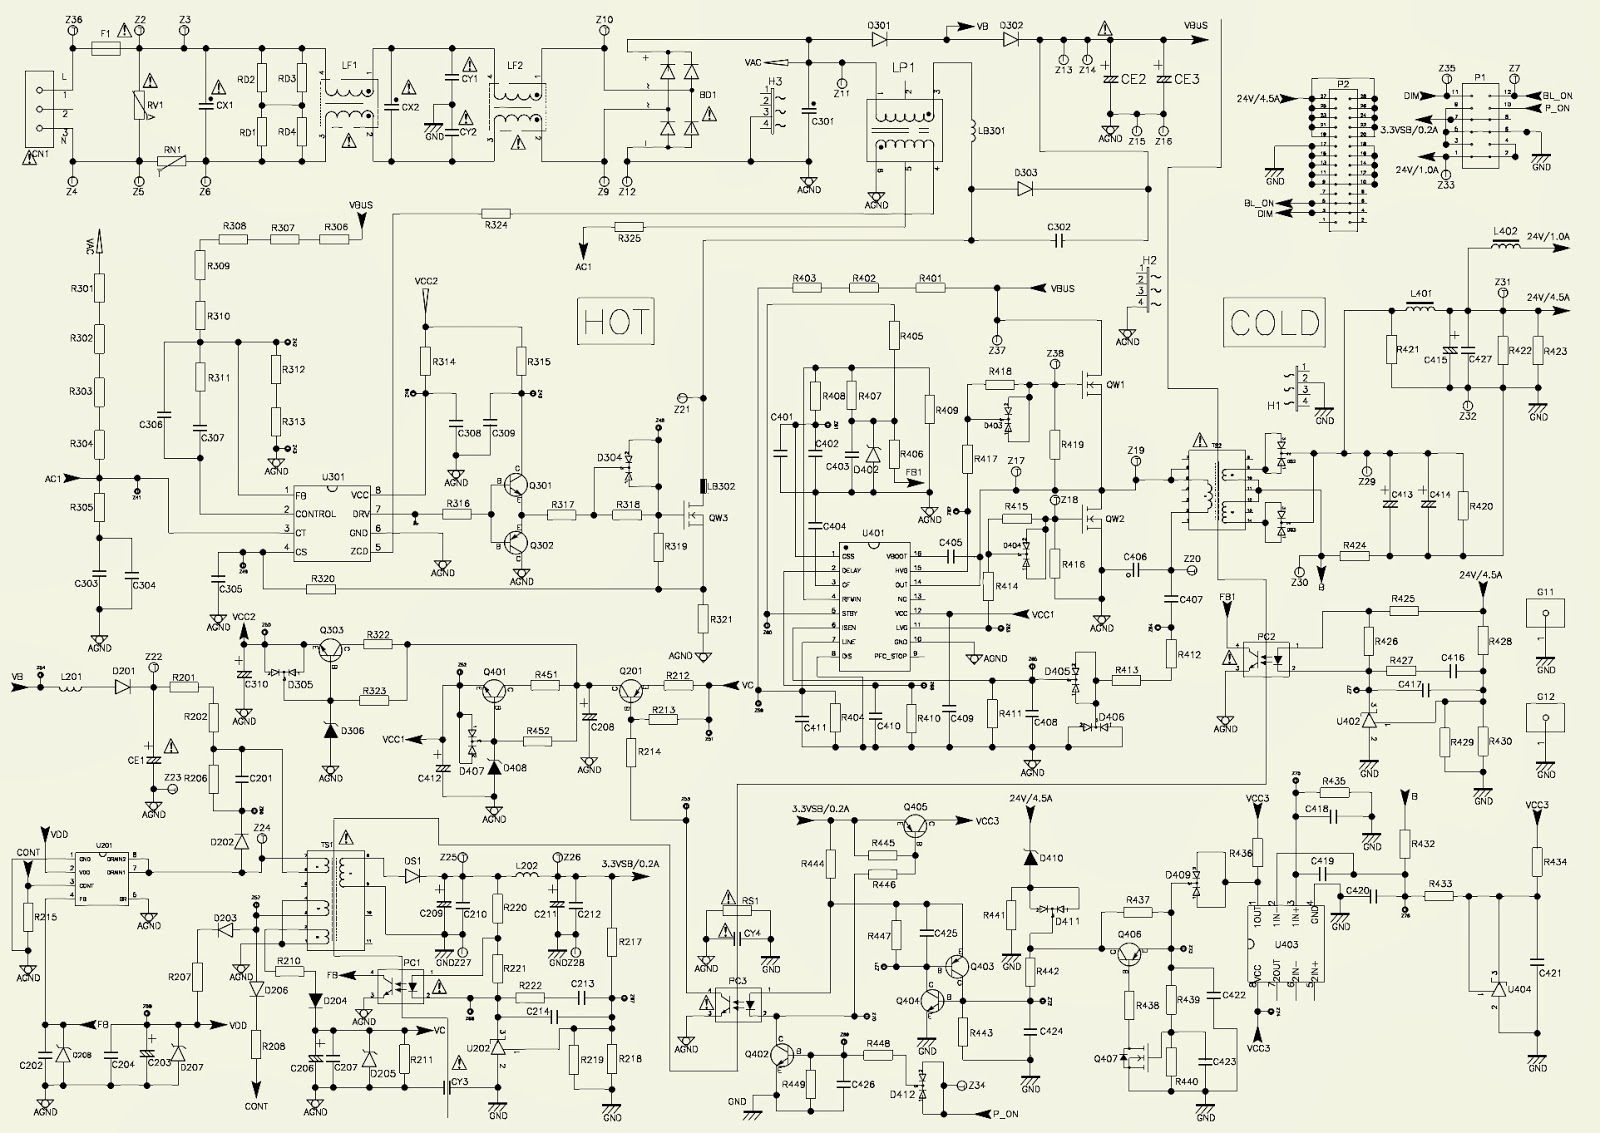 Lovely Smps Repair Manual Contemporary - Simple Wiring Diagram ...